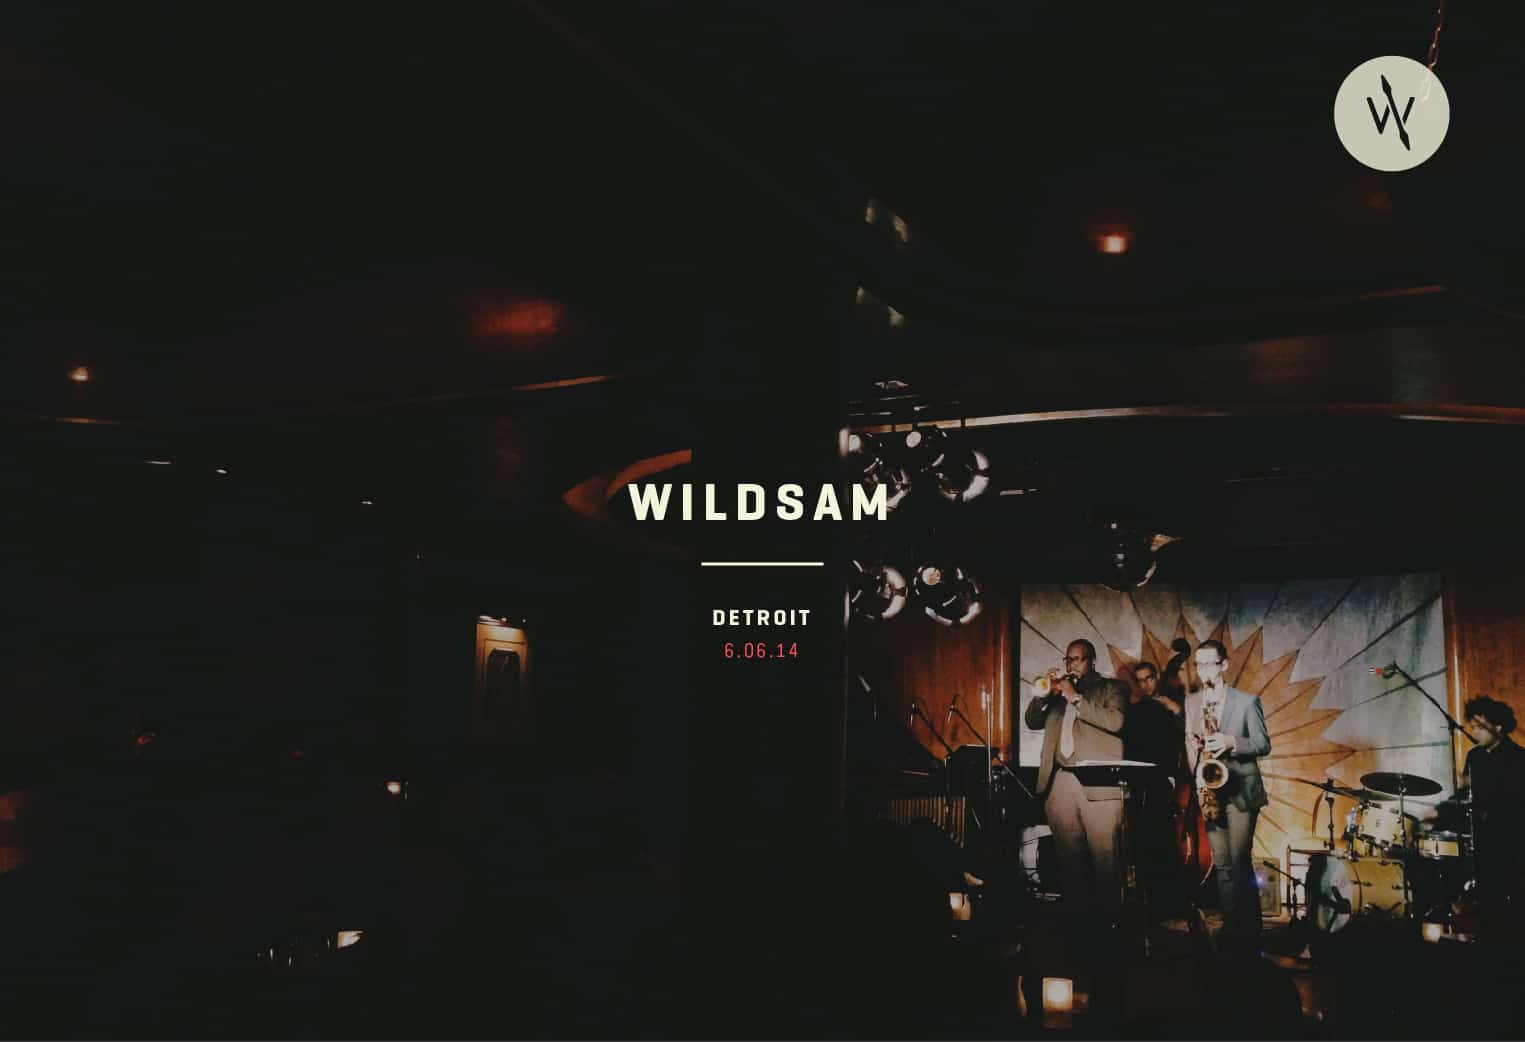 WildsamDetroit-01